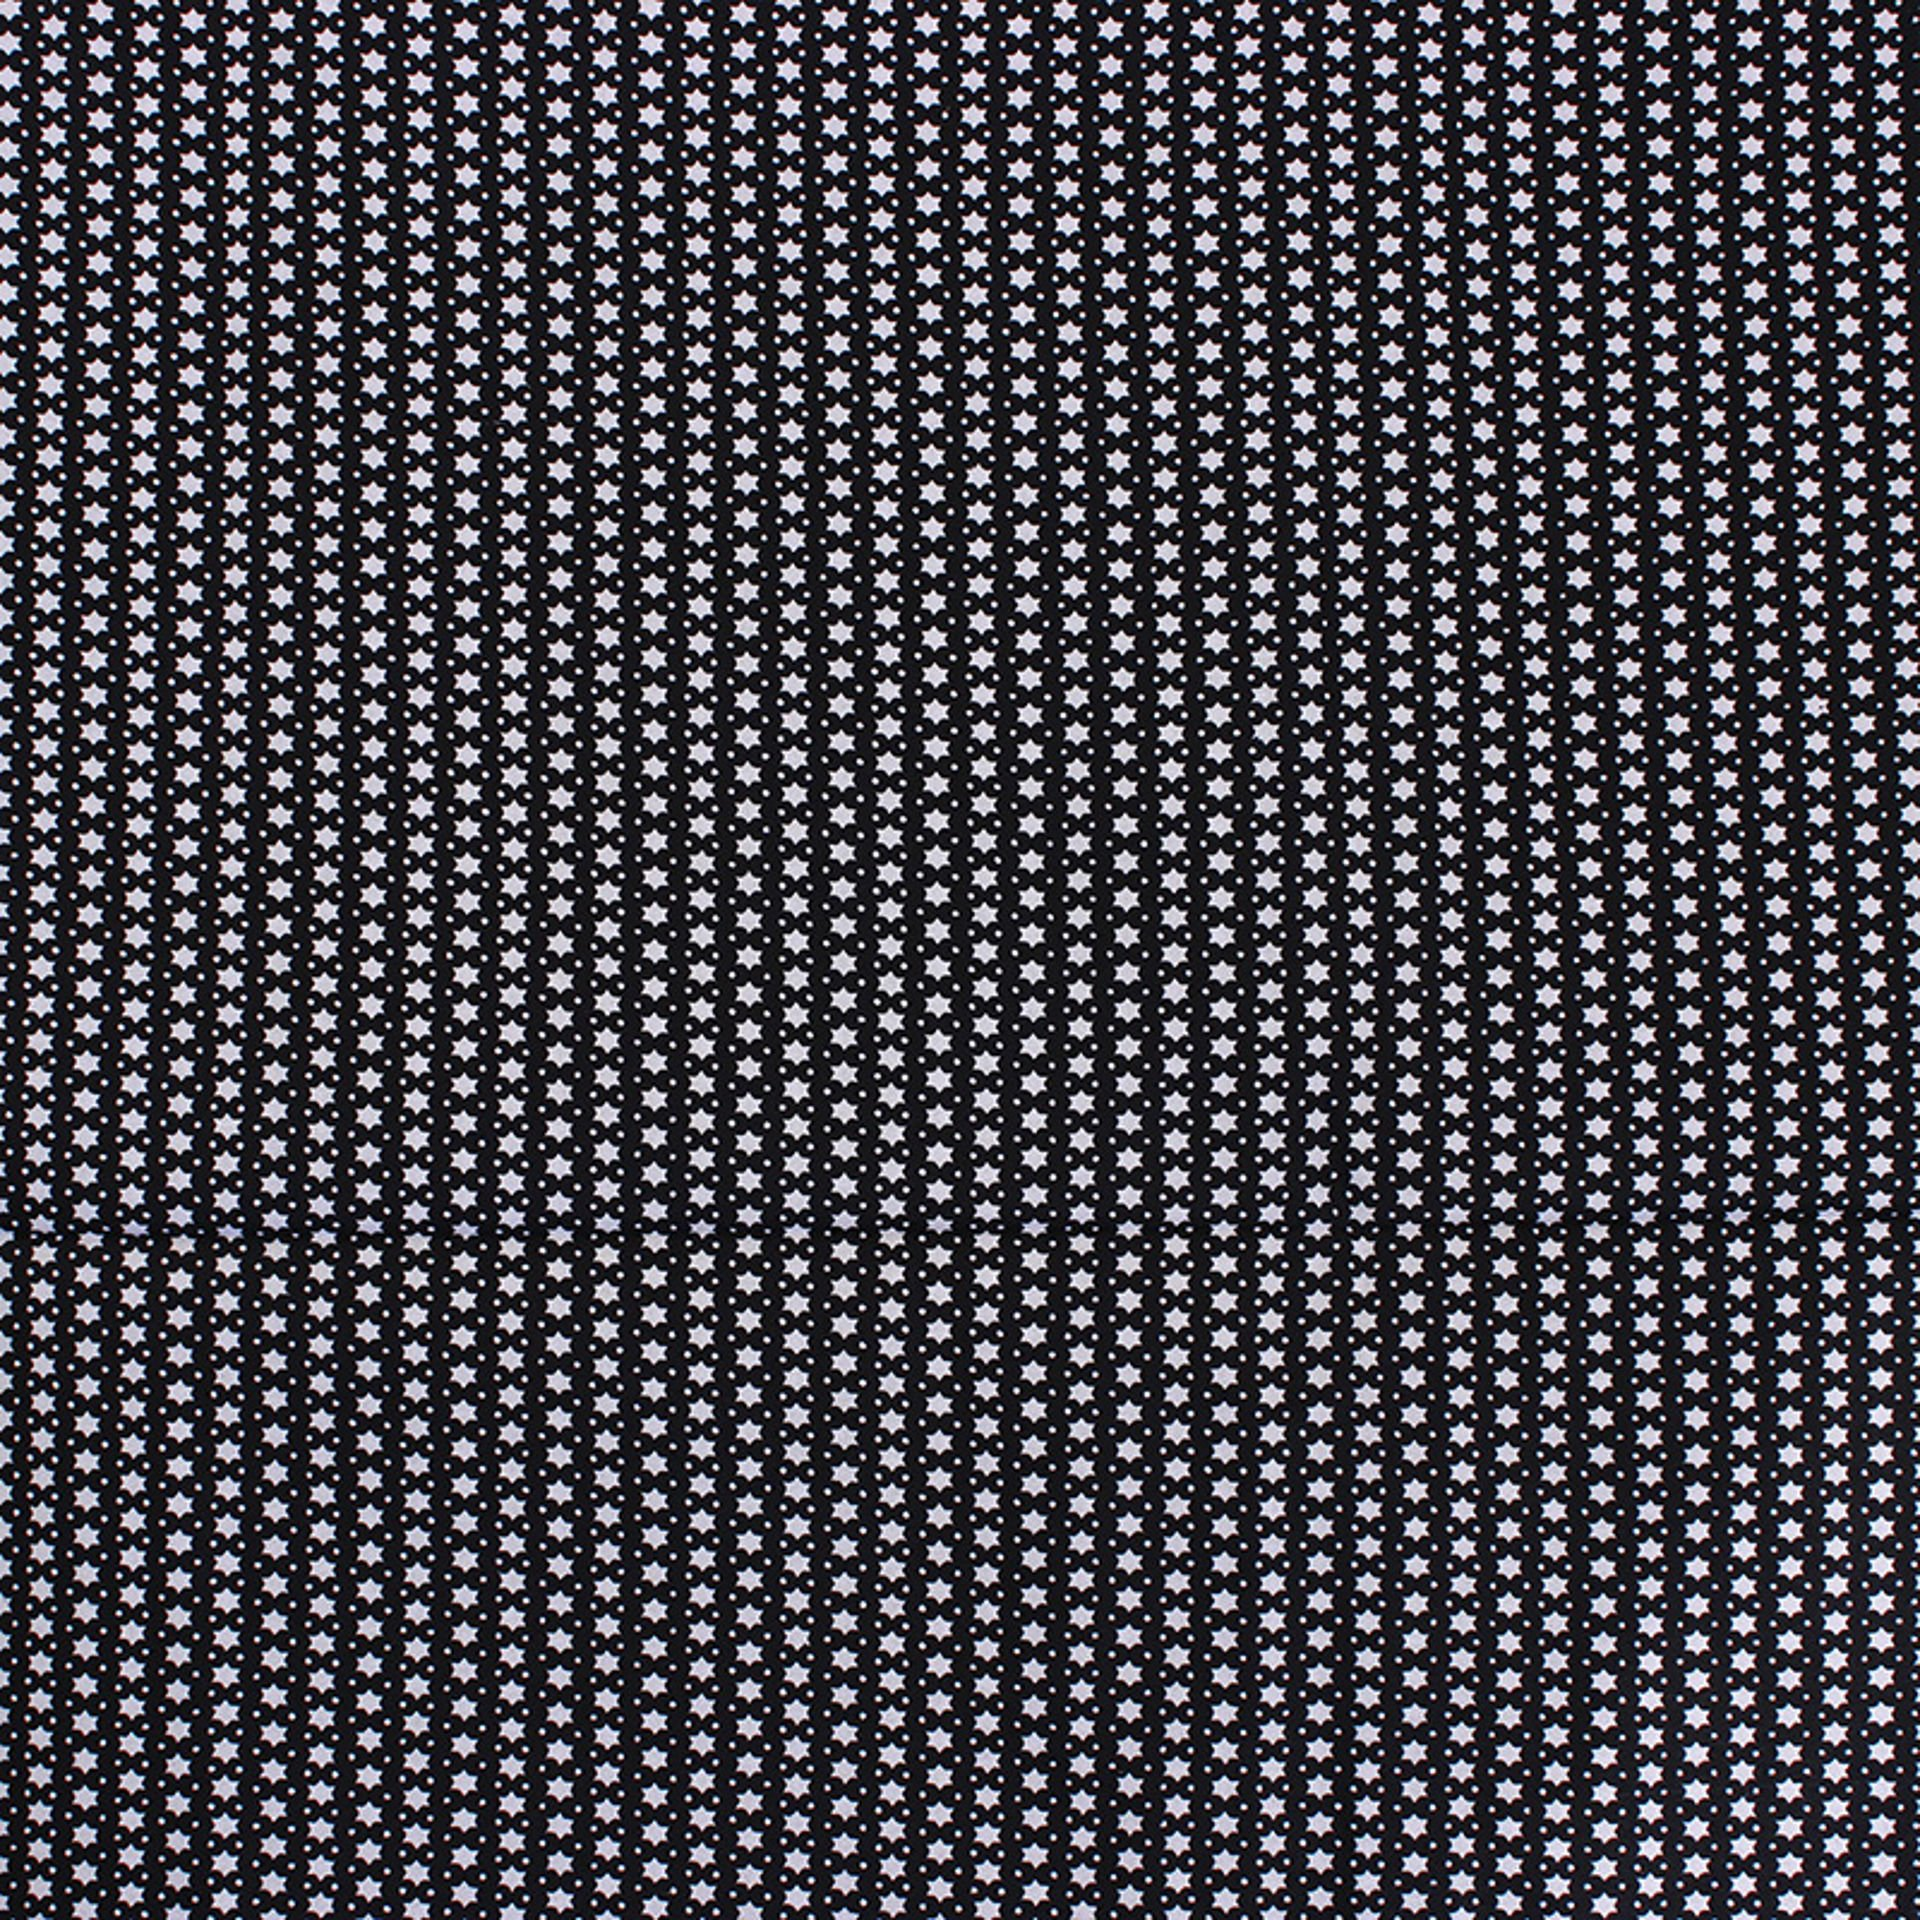 Picture of Black & White Star Pattern Fabric